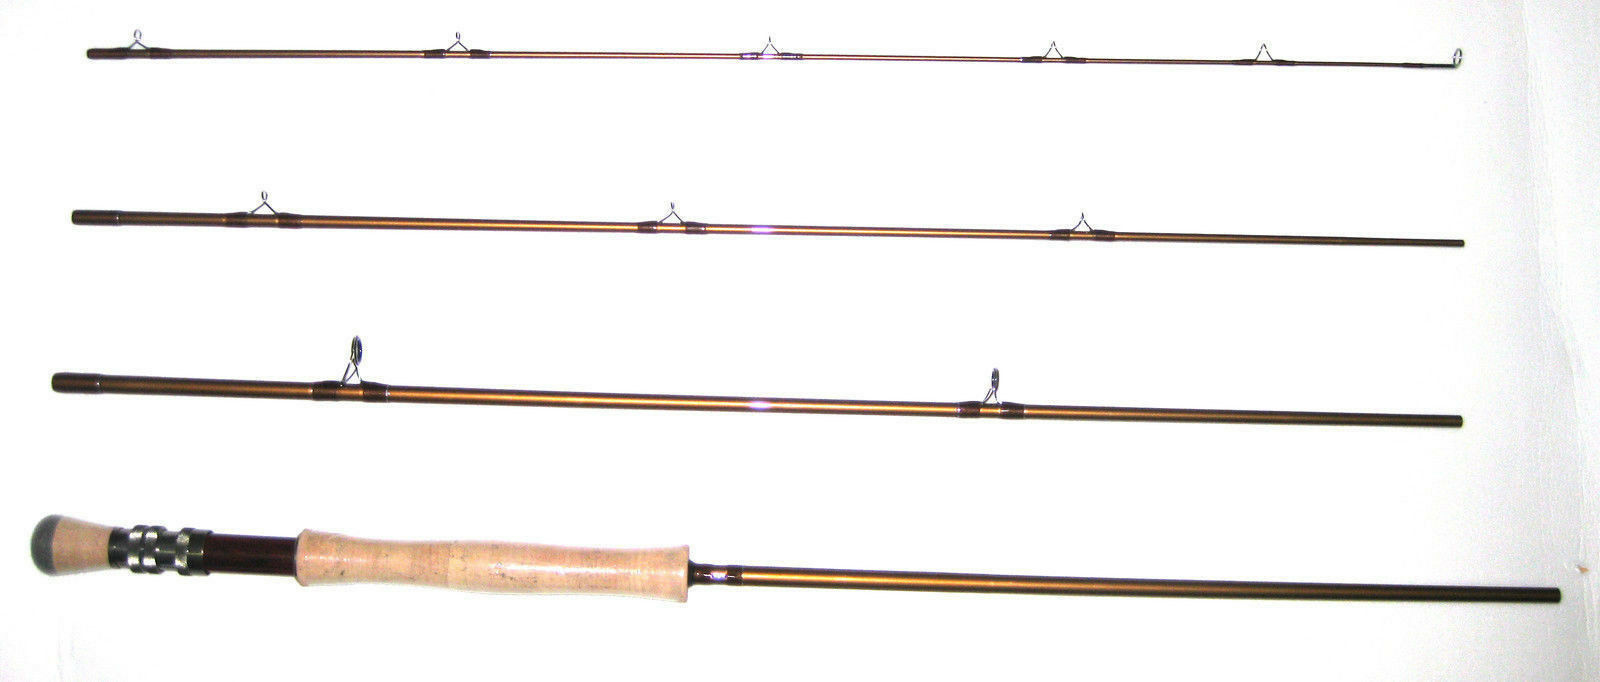 KUFA  8 4 section Graphite Fly fishing rods (L 9'; LW  8; Act MF) KFL9478